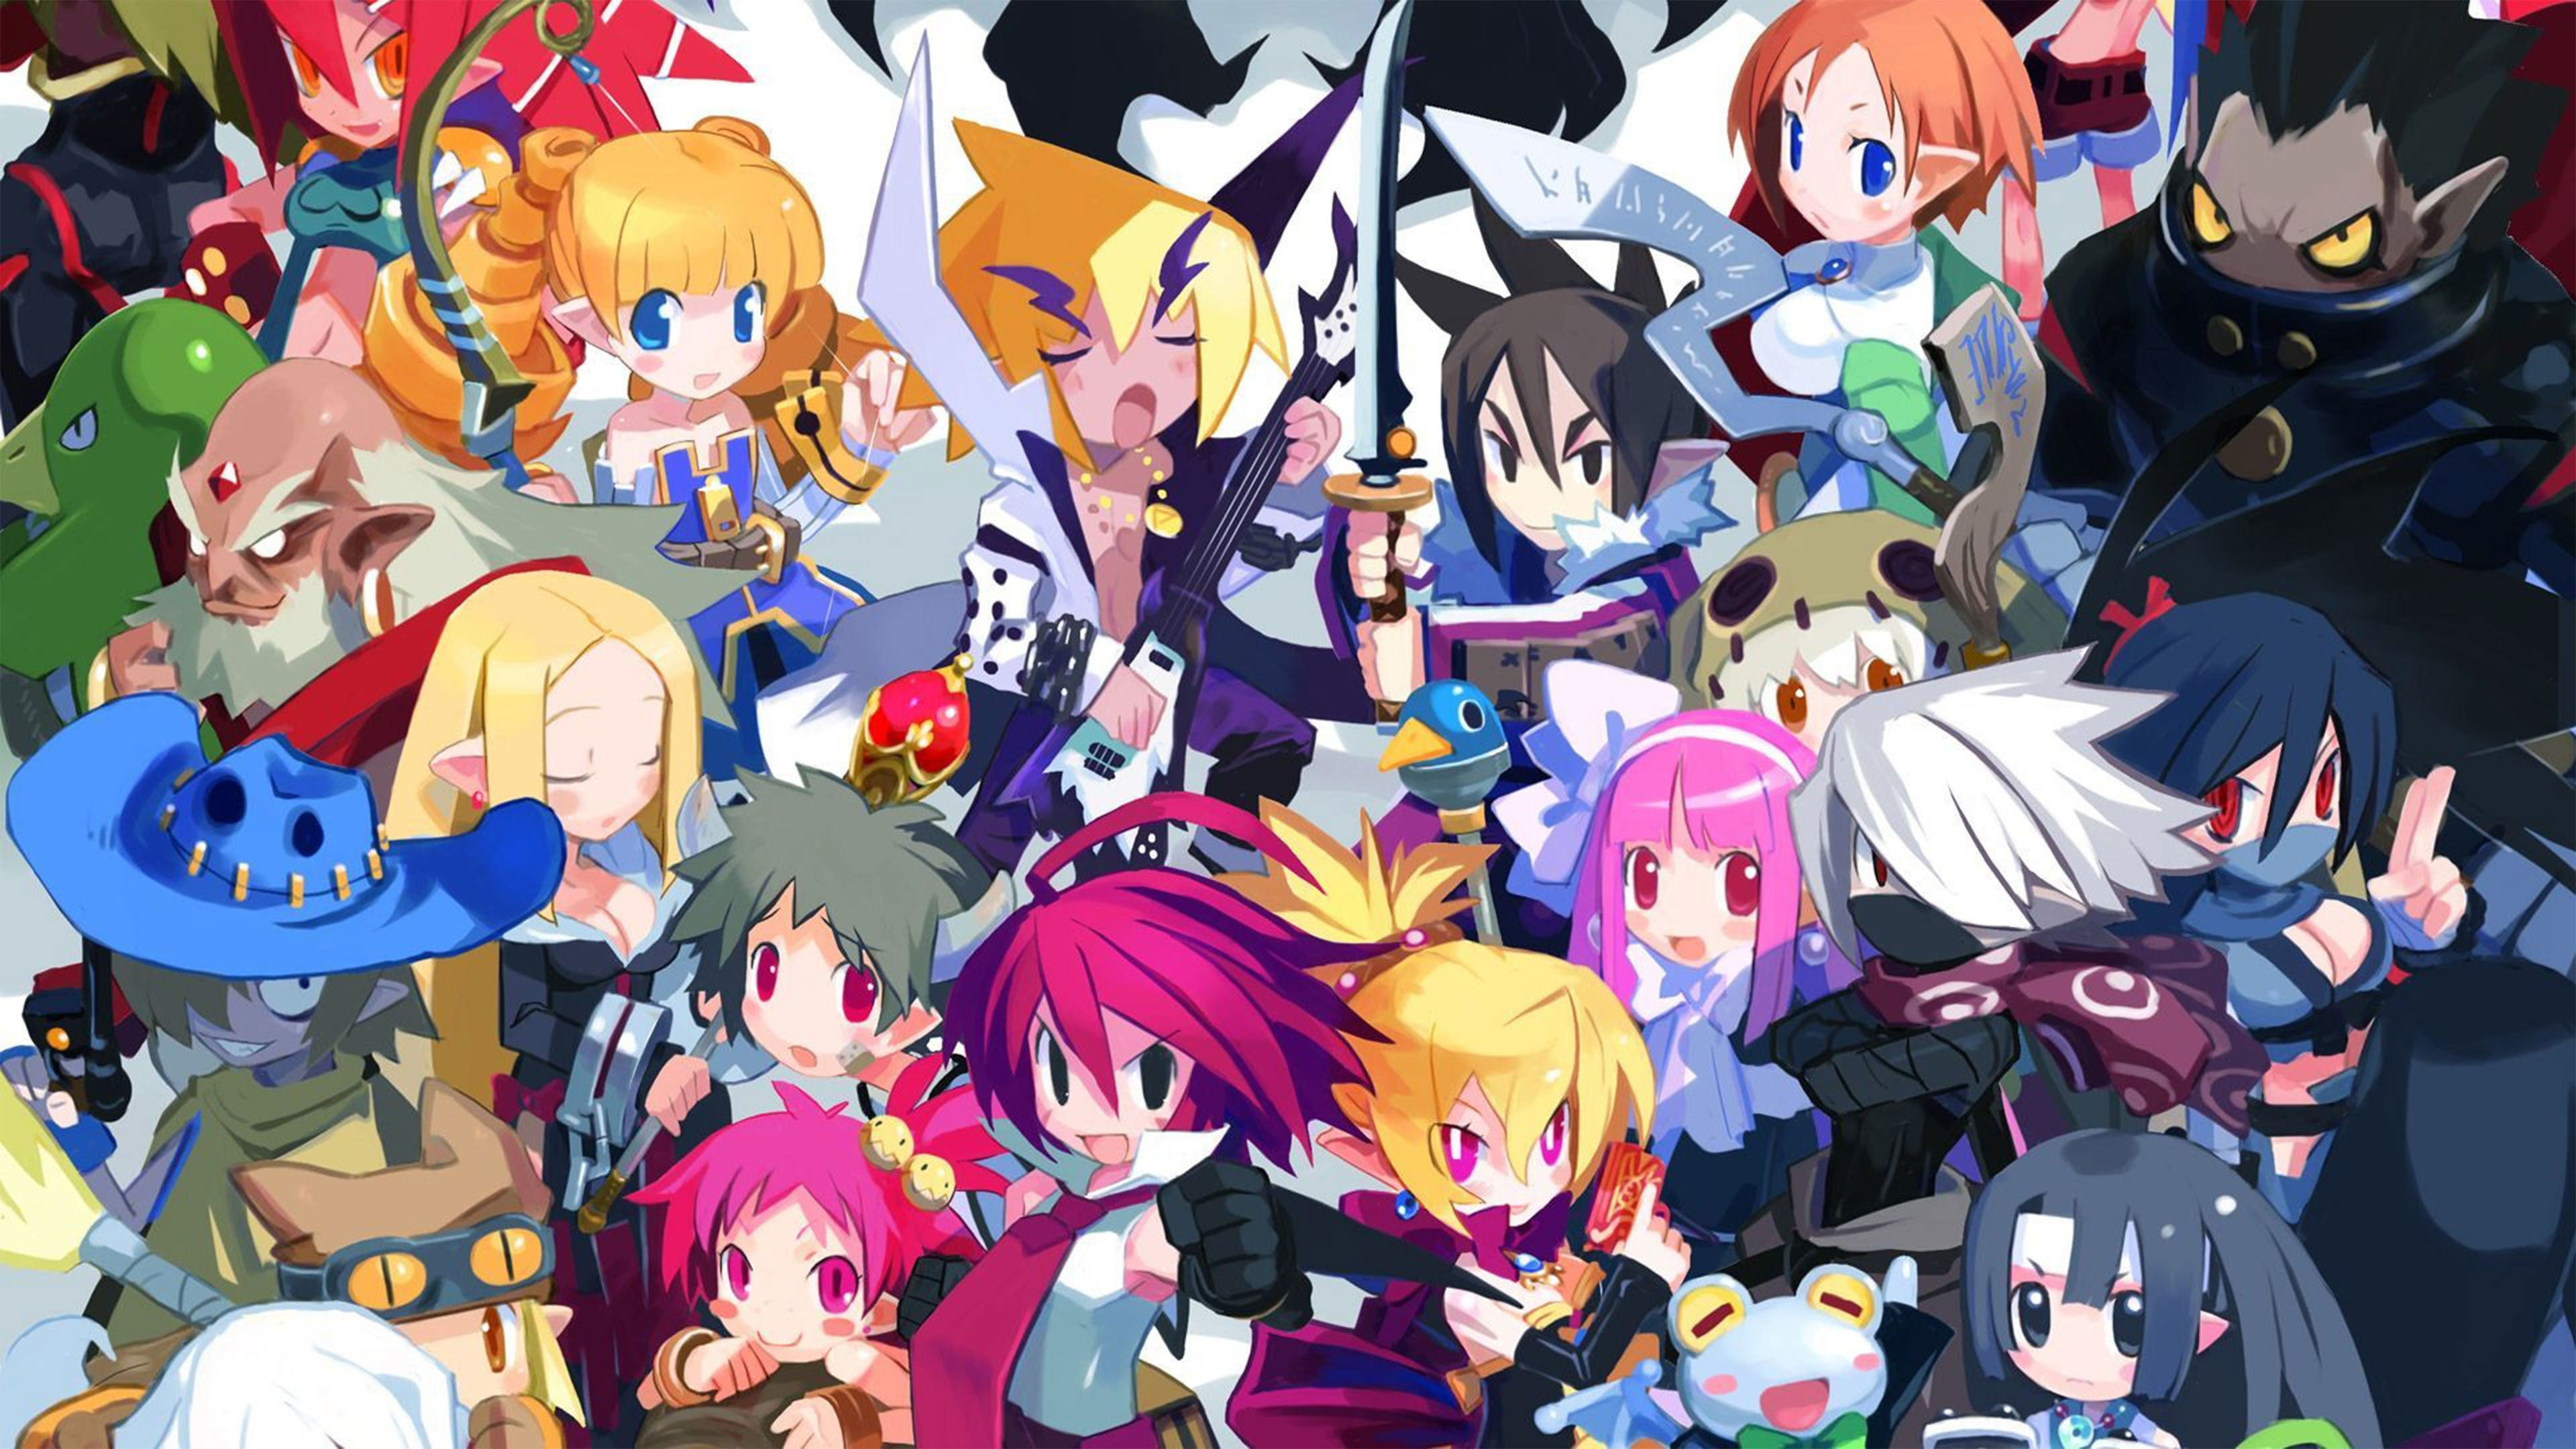 Res: 3840x2160, Disgaea 2 4K Wallpaper ...